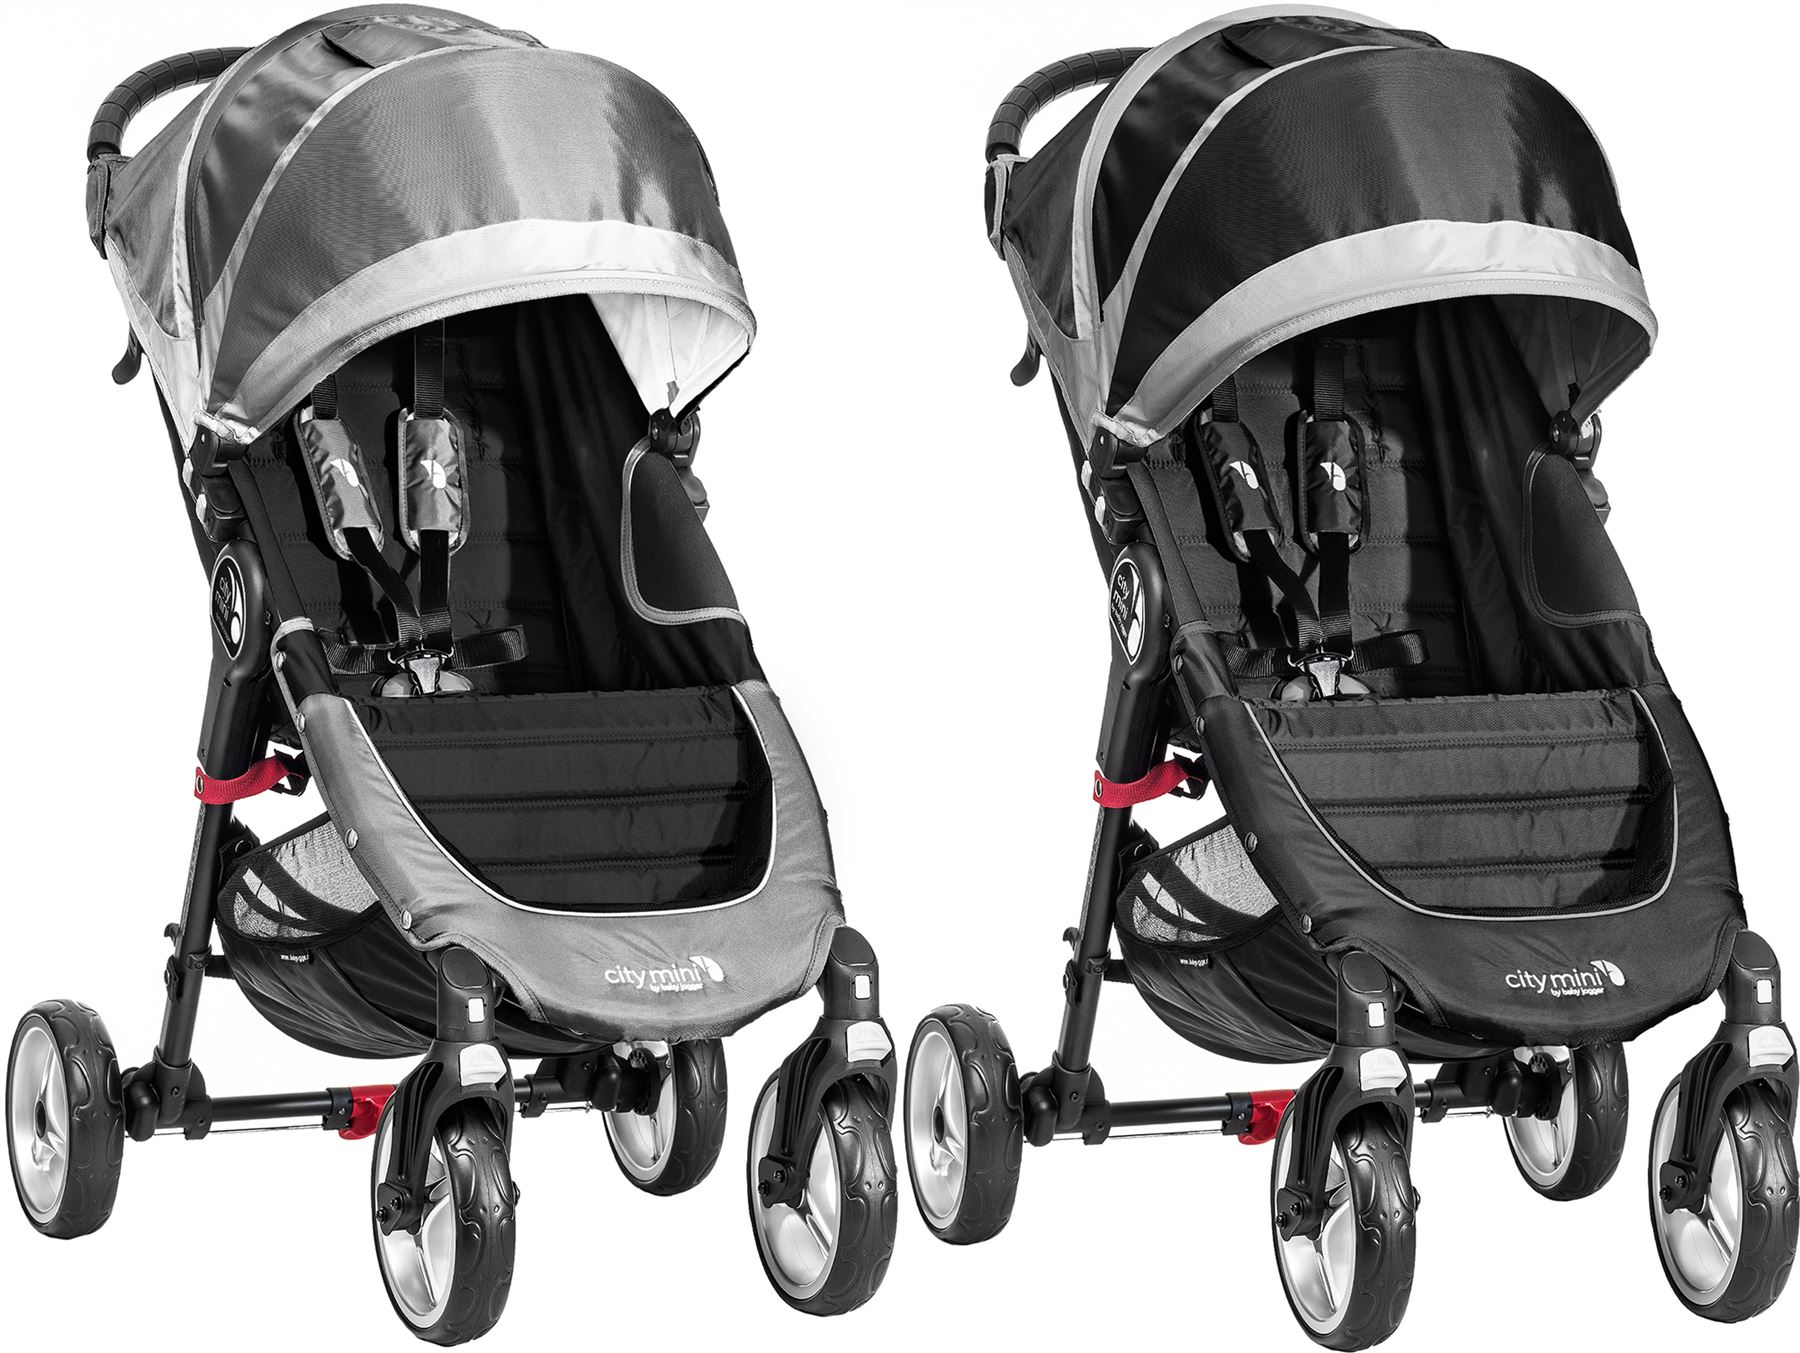 Details About Baby Jogger City Mini 4 Wheel Single Stroller Buggy Pushchair Baby Travel Bn